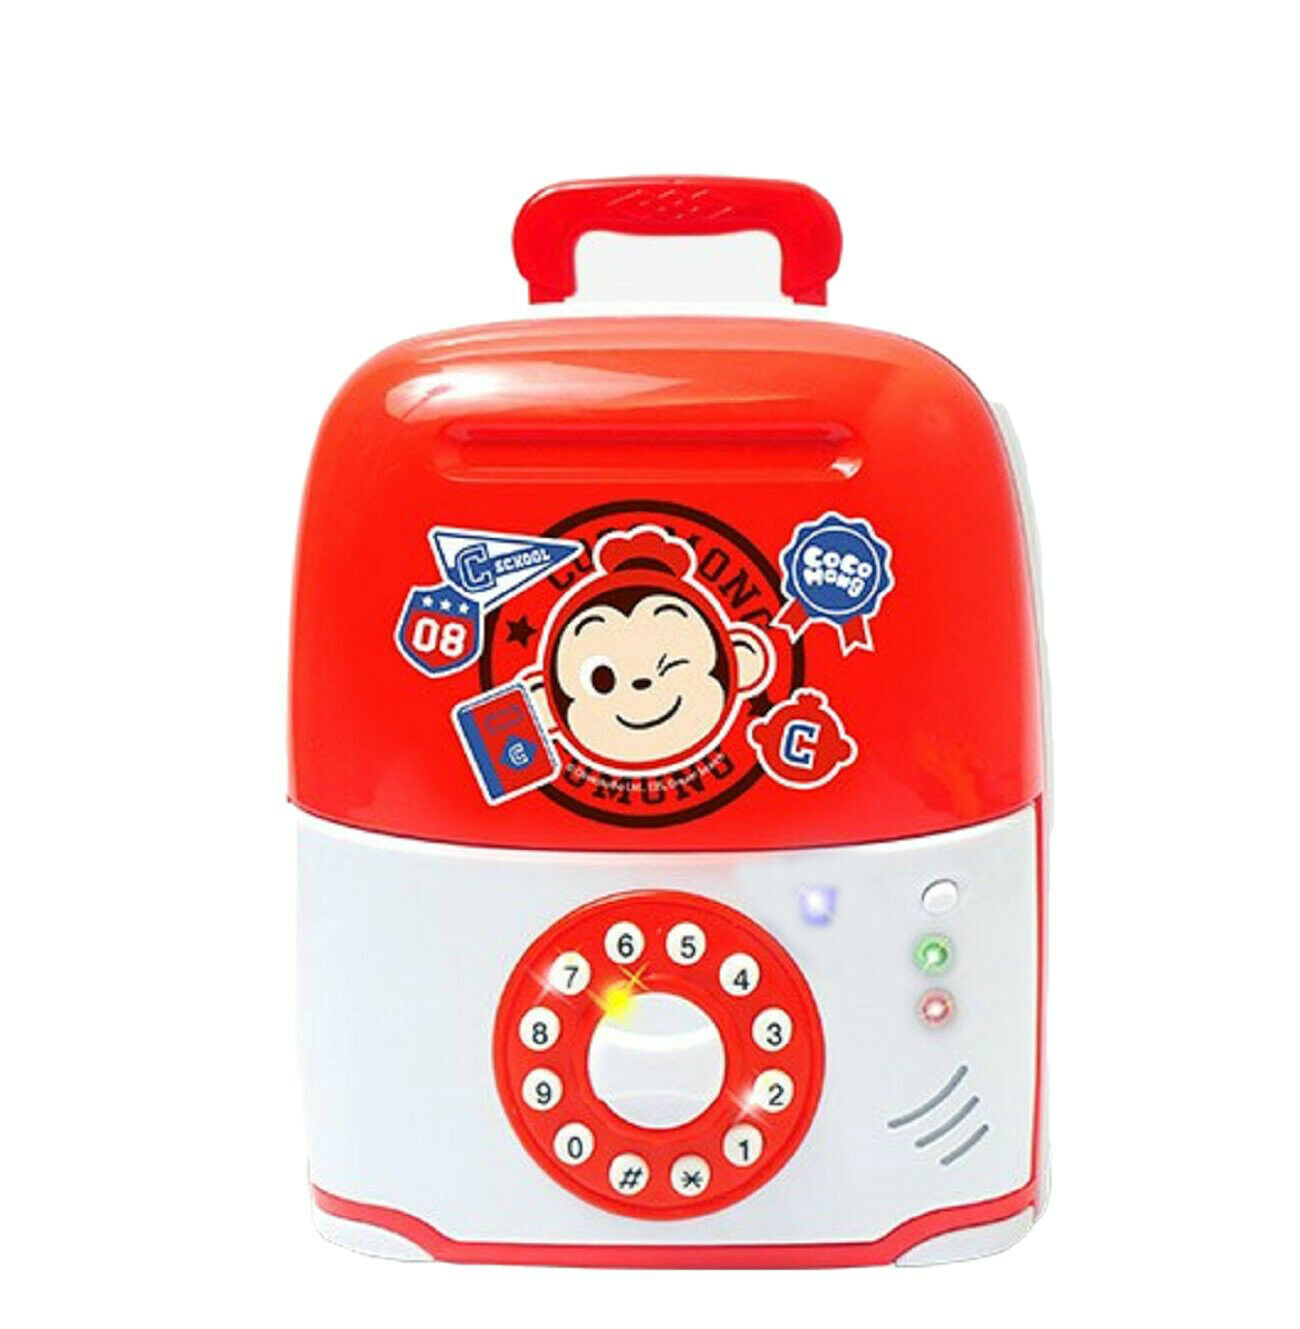 Jeus Toys Coco Mong Melody Light Suitcase Money Banks Savings Box Piggy Bank Toy